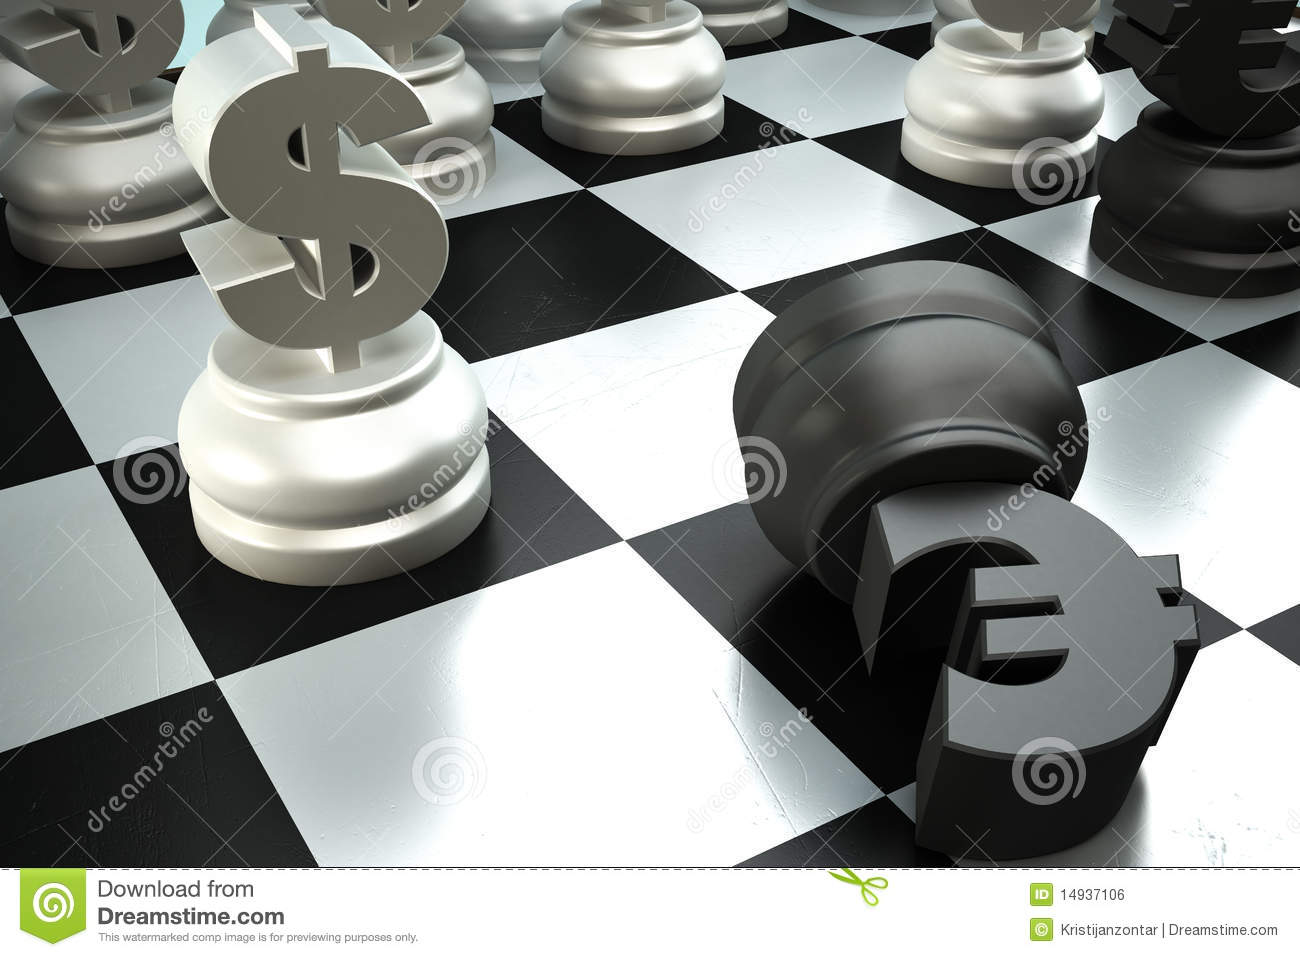 A fight between dollar end euro chess pieces